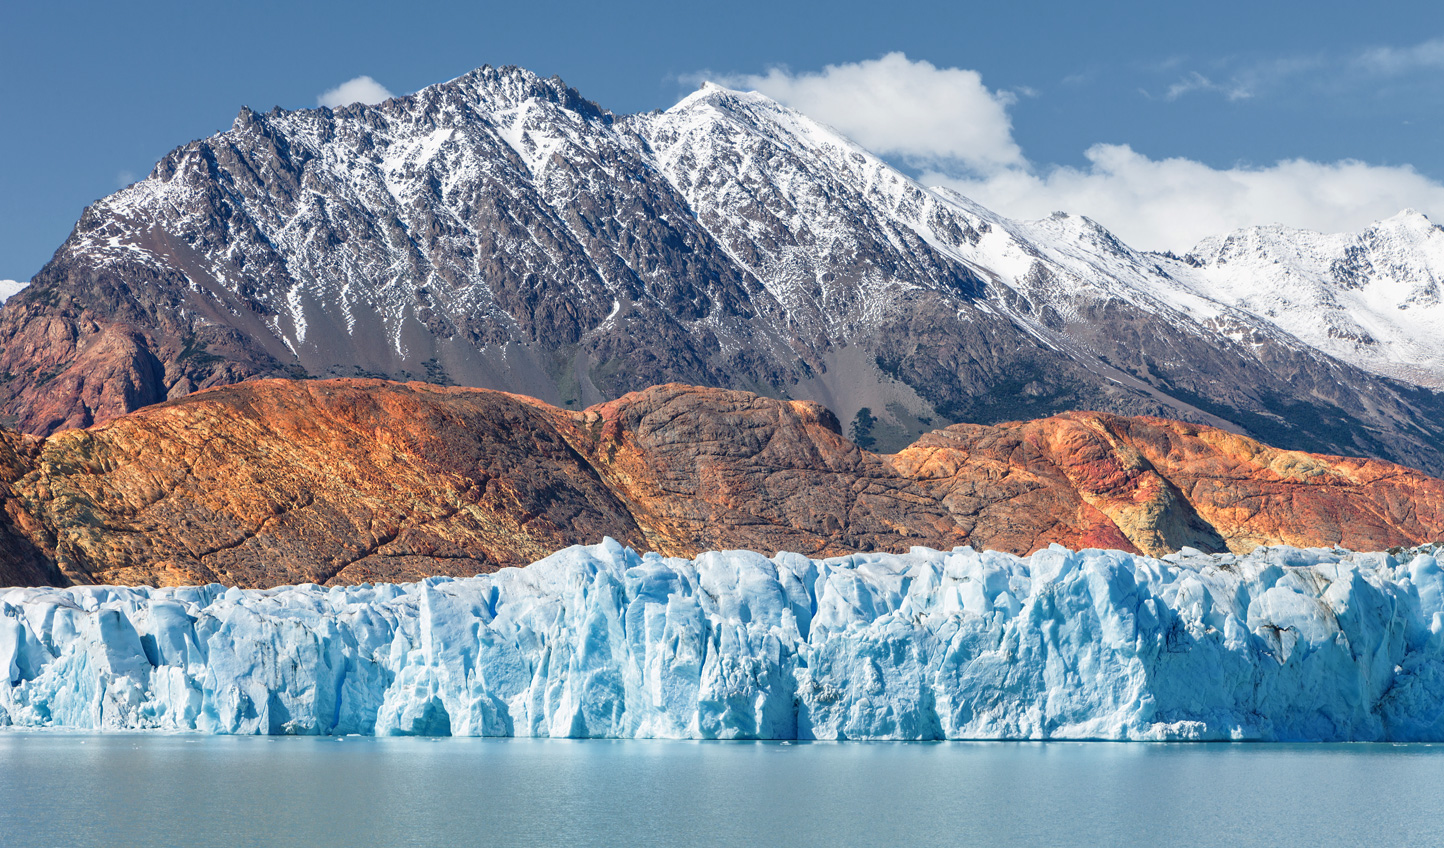 From the colourful streets of La Boca to the colourful landscapes of Patagonia